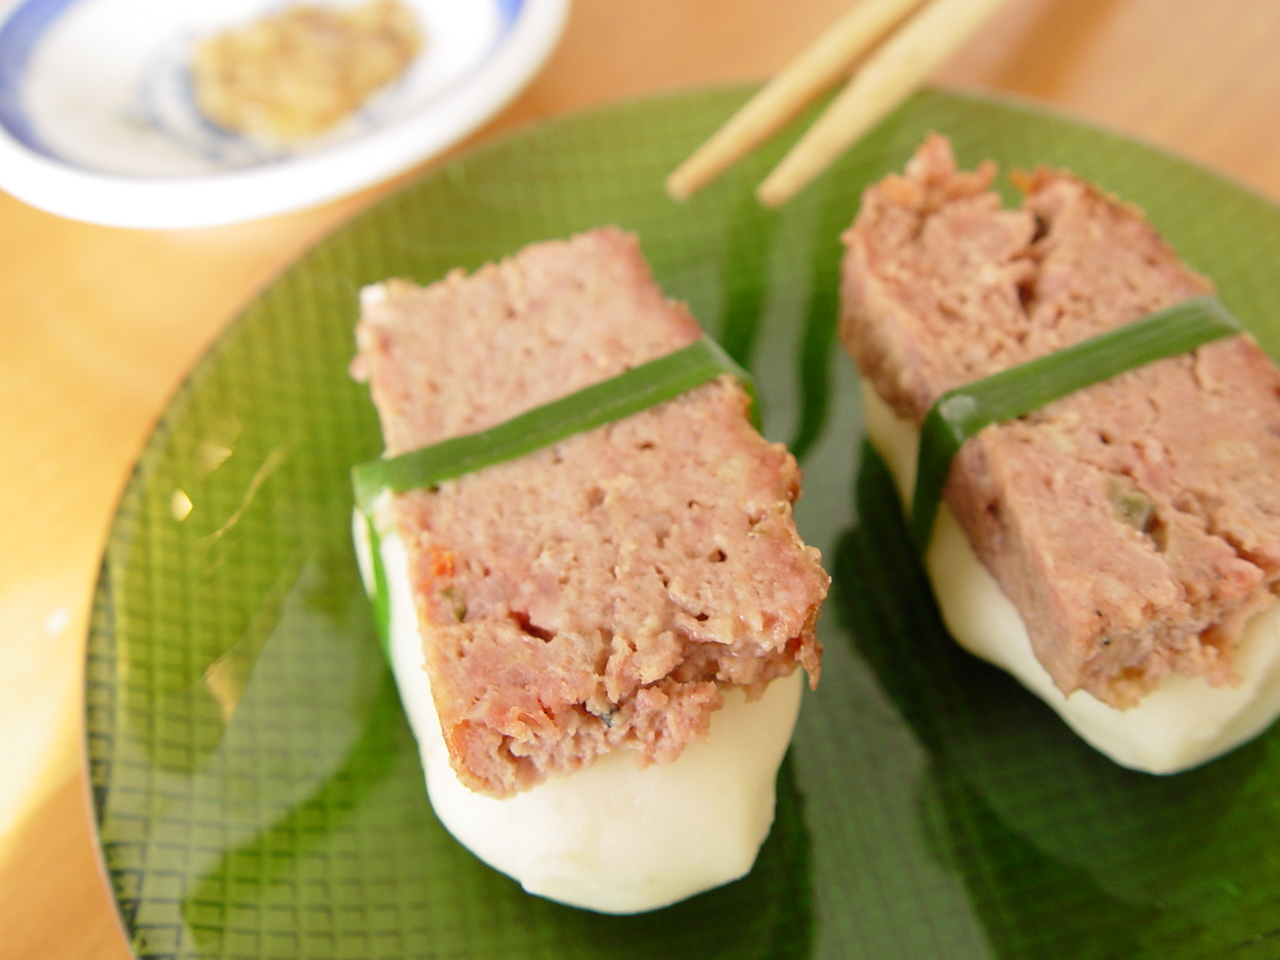 Adventures in Incongruity: Meatloaf Sushi